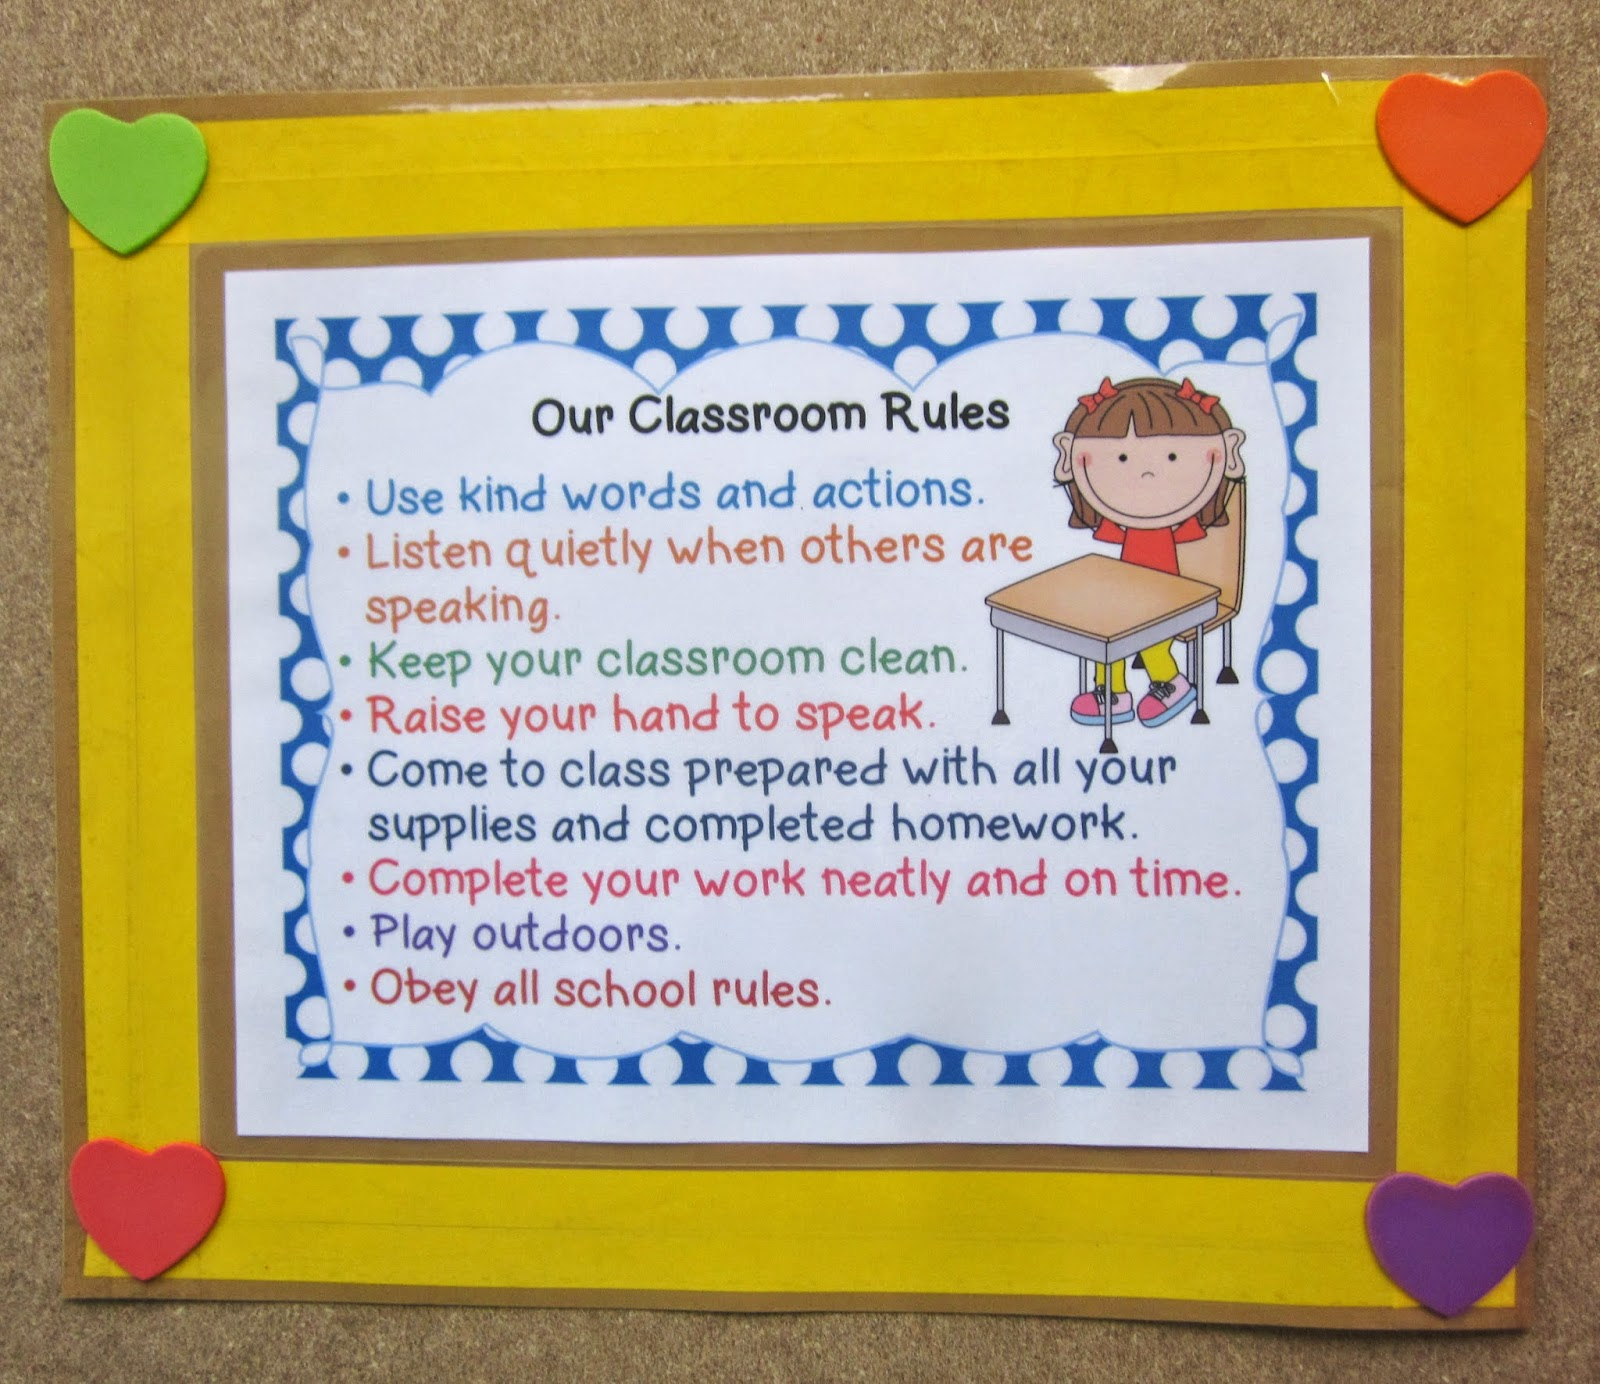 Nyla's Crafty Teaching: Free Posters - Positive Classroom ...